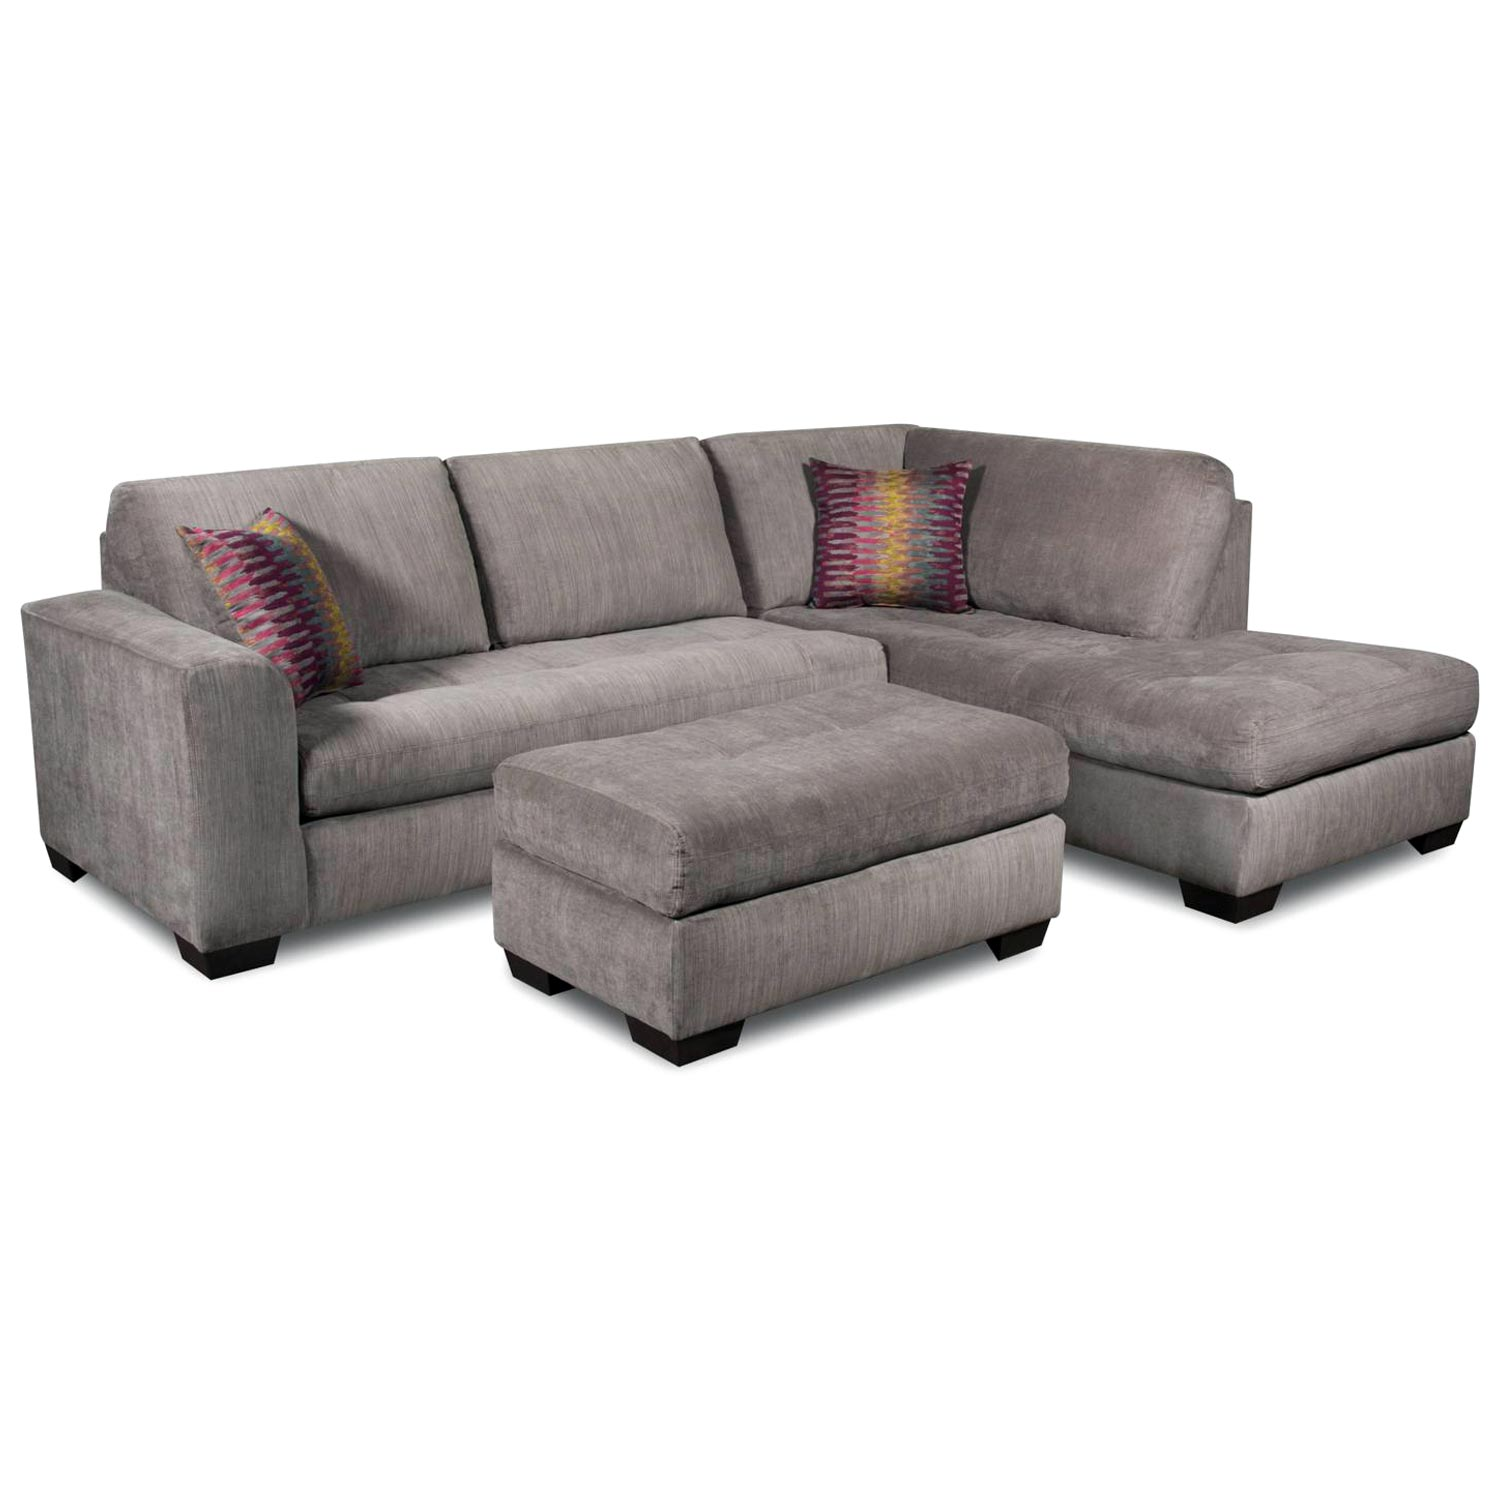 Almeda Sofa & Chaise Sectional - Heather Seal Fabric